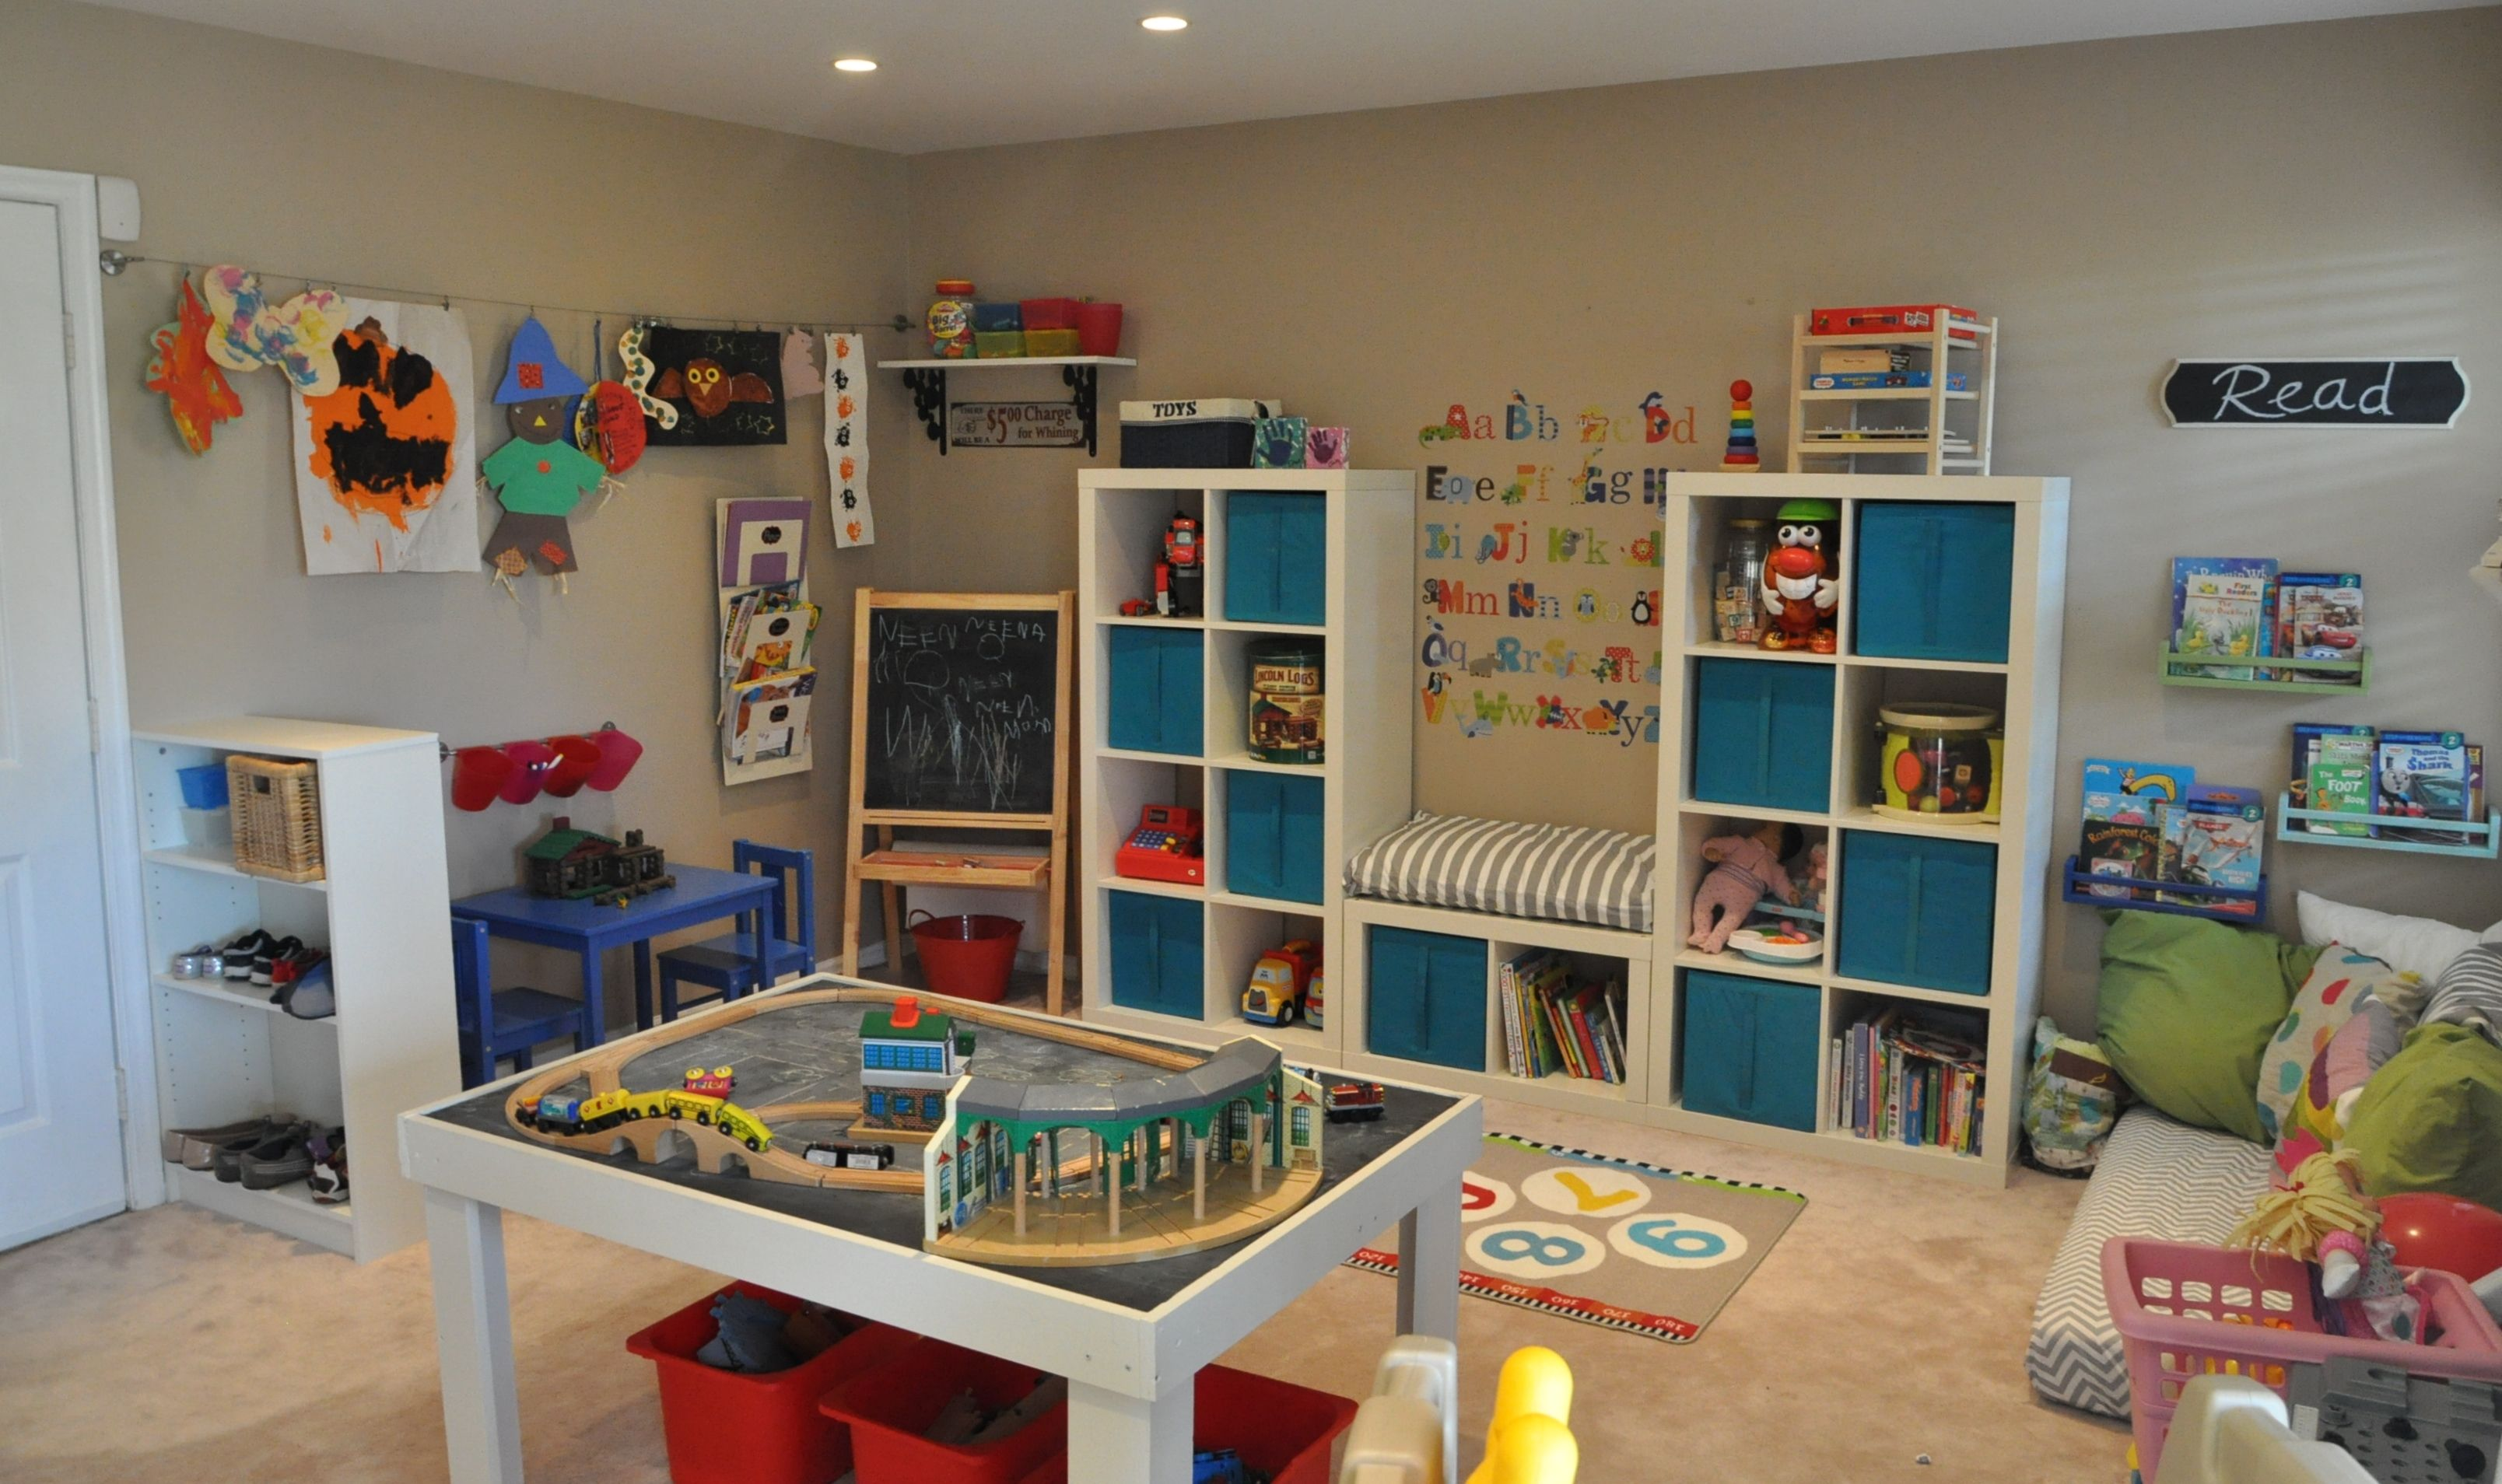 Pin By Gemma Puzas On Playroom Ideas Small Playroom Playroom Design Playroom Storage